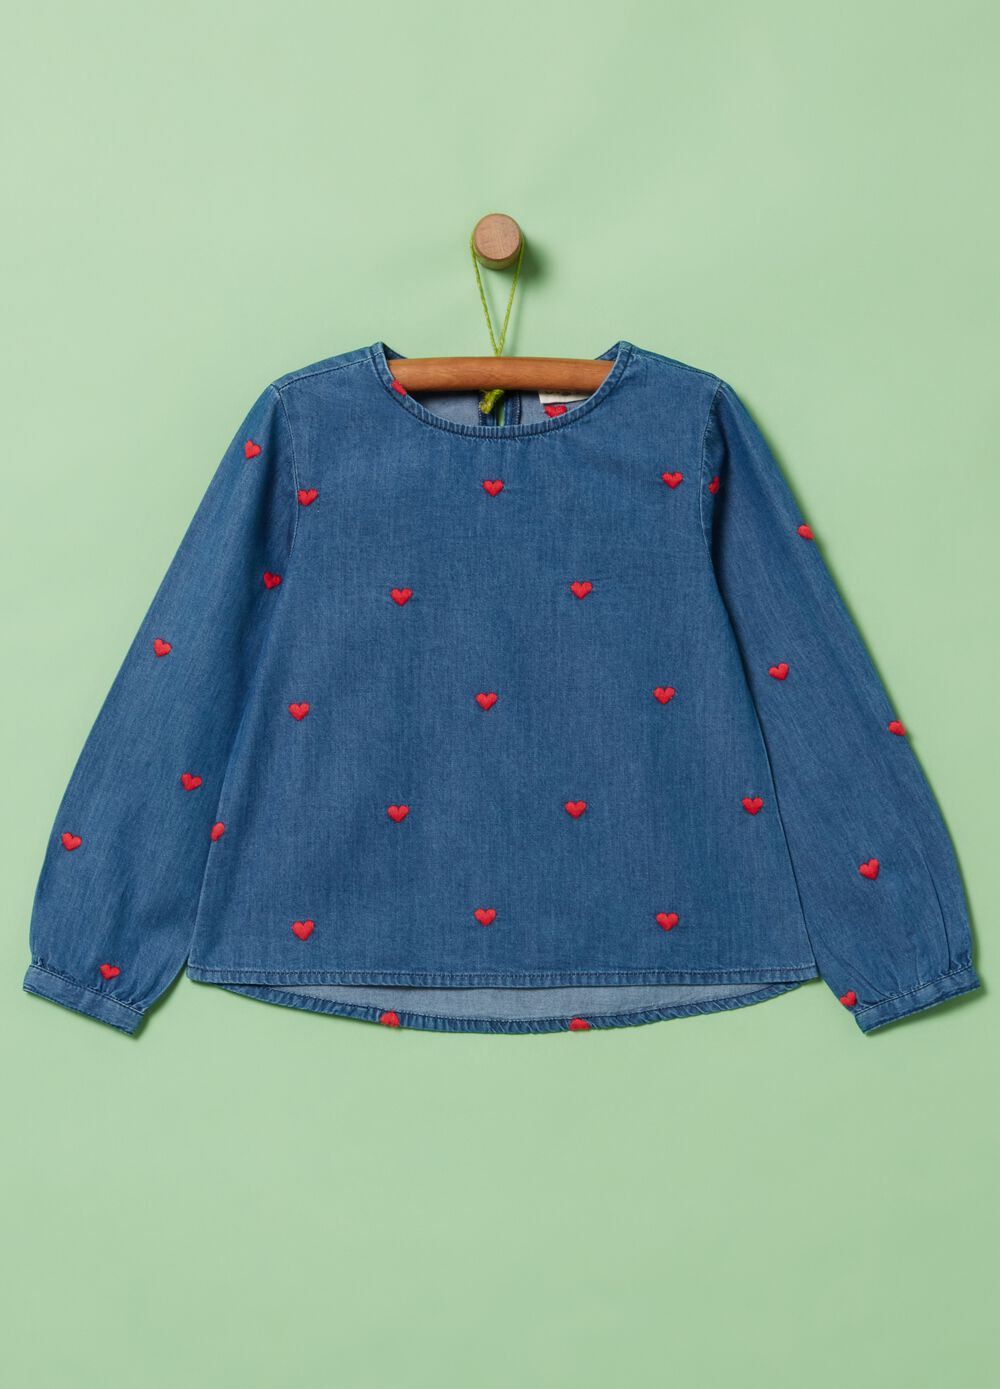 Denim blouse with hearts embroidery